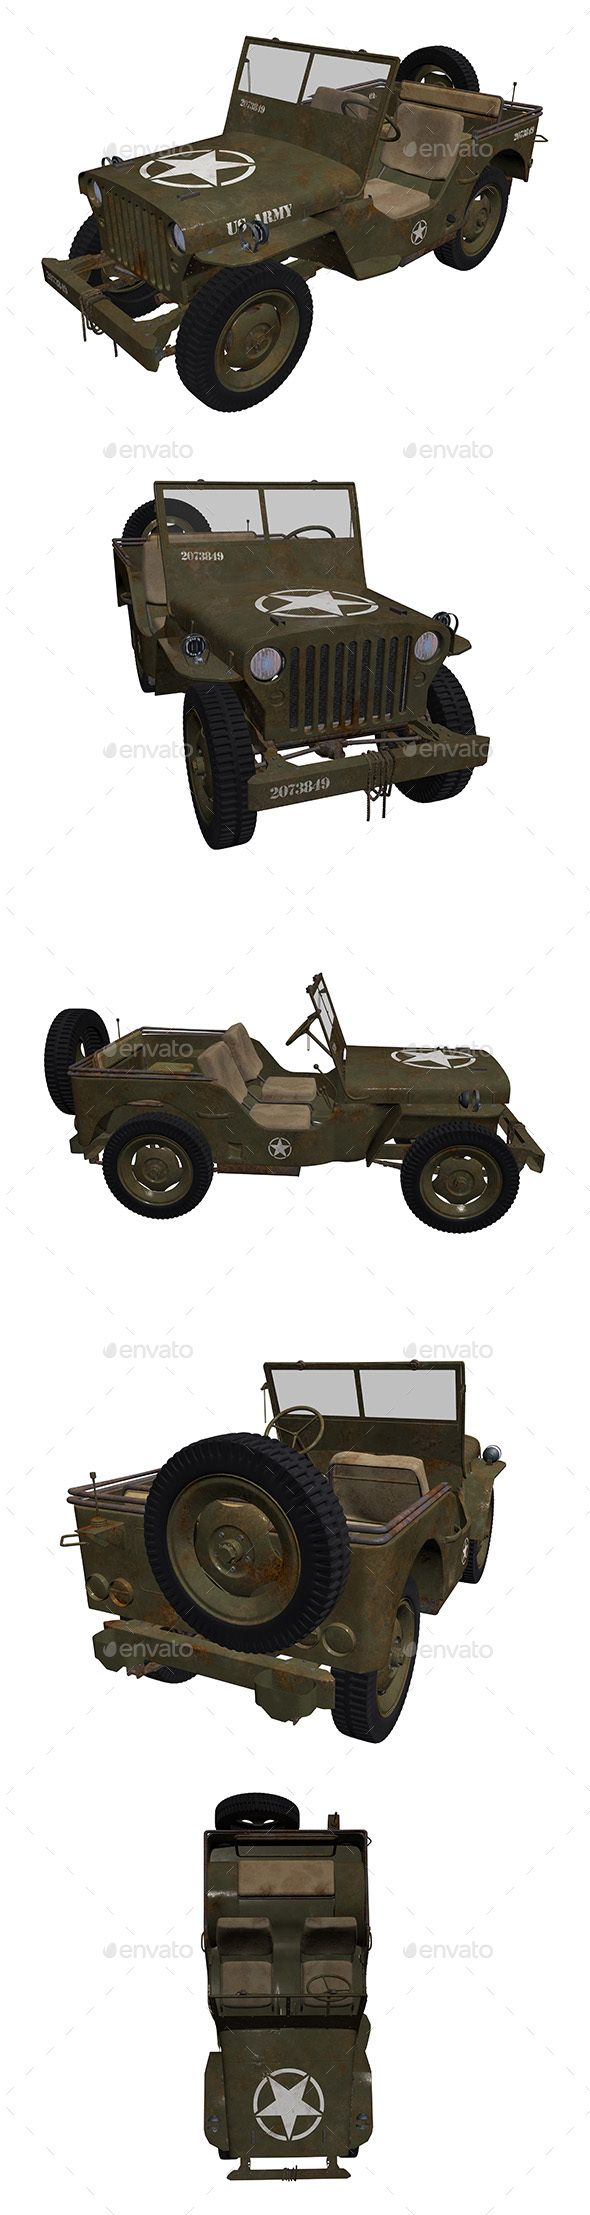 3D Military Jeep - 5 Renders - Technology #3D #Renders Download here: https://graphicriver.net/item/3d-military-jeep-5-renders/20390266?ref=alena994